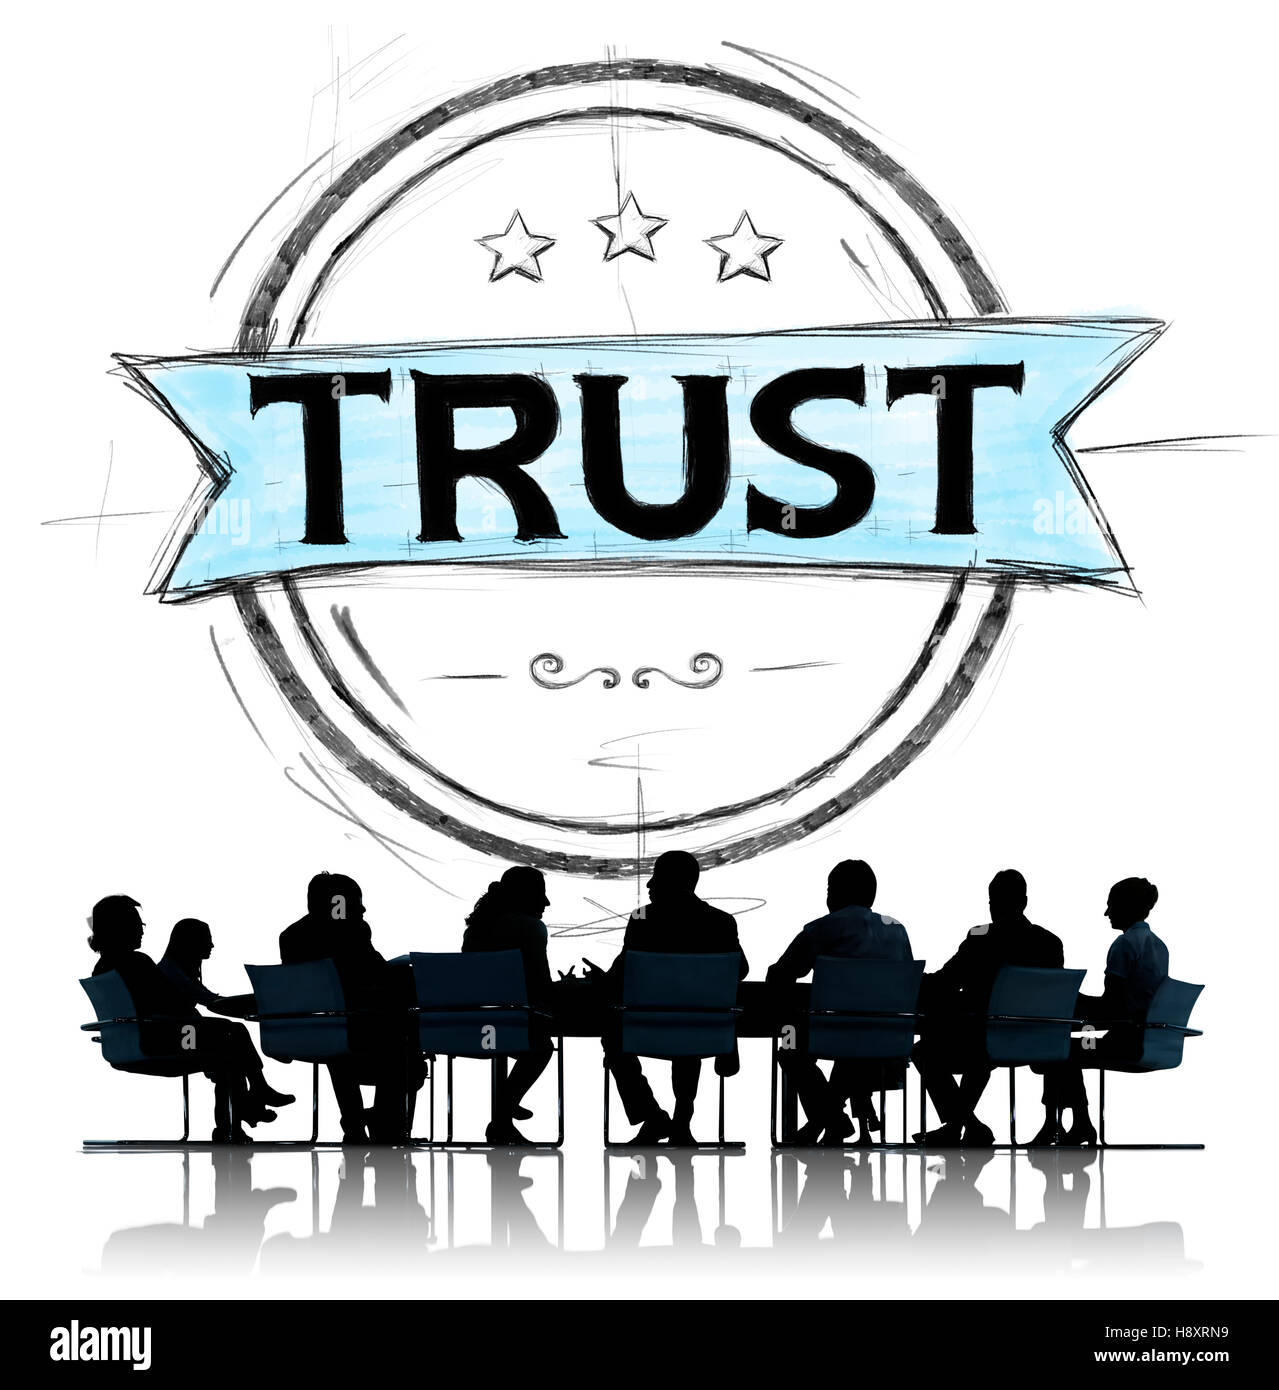 Trust Belief Faithfulness Honest Honorable Concept - Stock Image